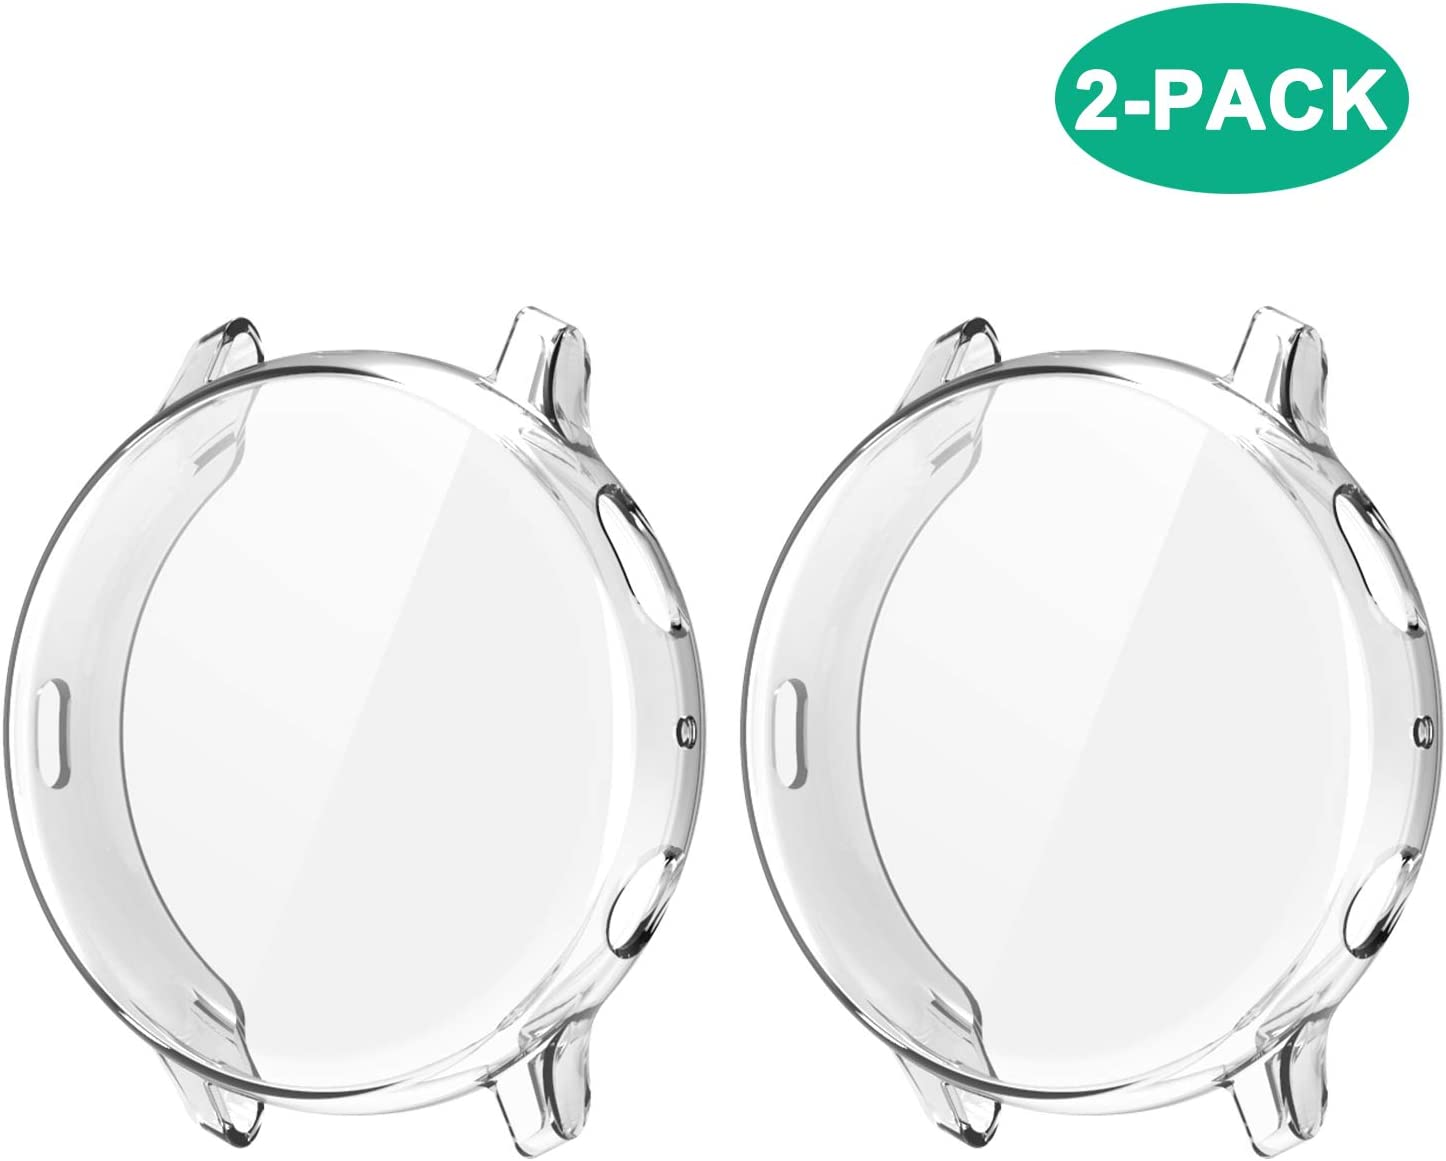 Compatible with Galaxy Watch Active 2 Case 44mm, 2 Pack Full Coverage TPU Anti-Scratch Screen Protector Case Soft Protective Cover for Samsung Galaxy Active 2 44mm Smartwatch